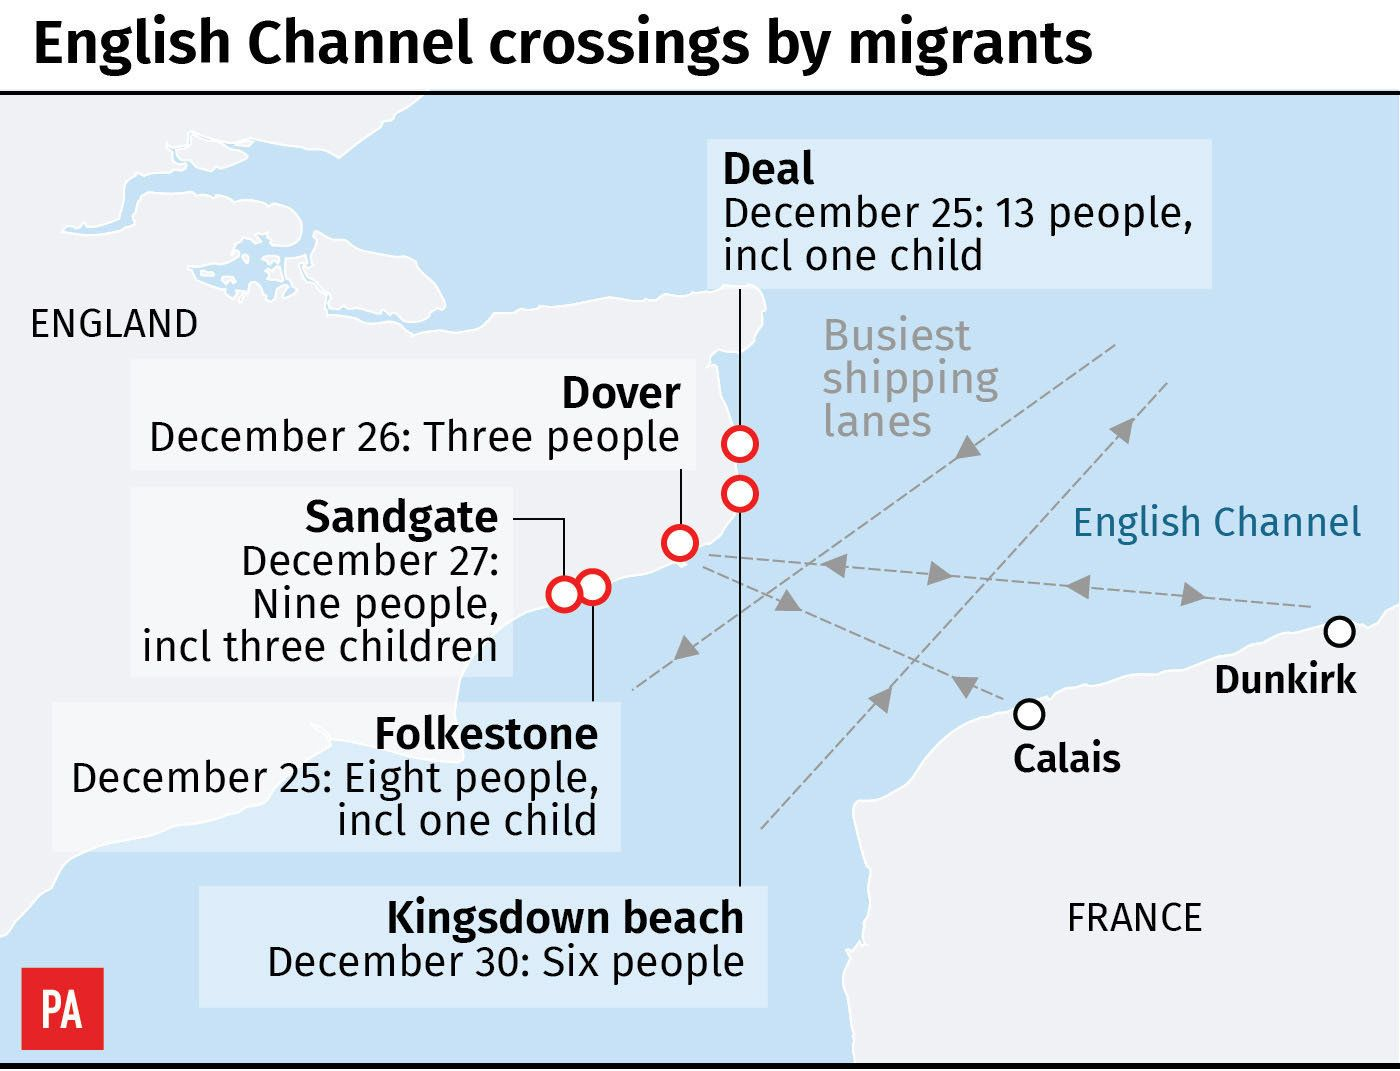 PA Ready News UK               UK and France agree to 'ramp up' action on English Channel migrant crossings